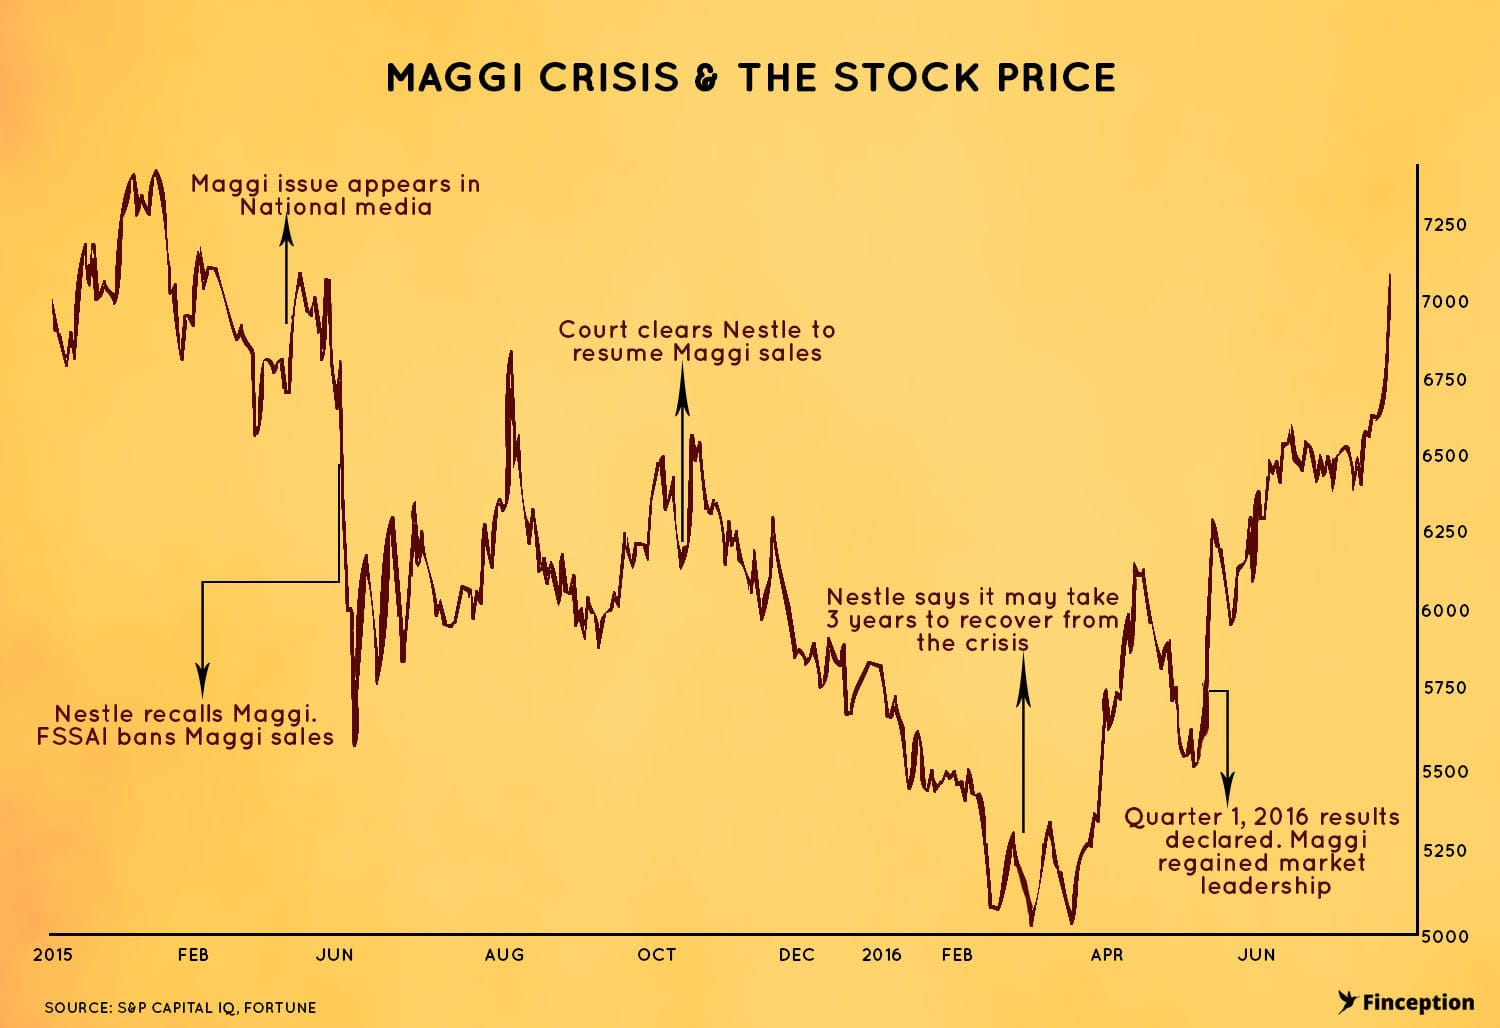 Nestle India stock price crashed due to Maggi crisis in July 2015. But the stock regained after successful re-launch of Maggi in November 2015